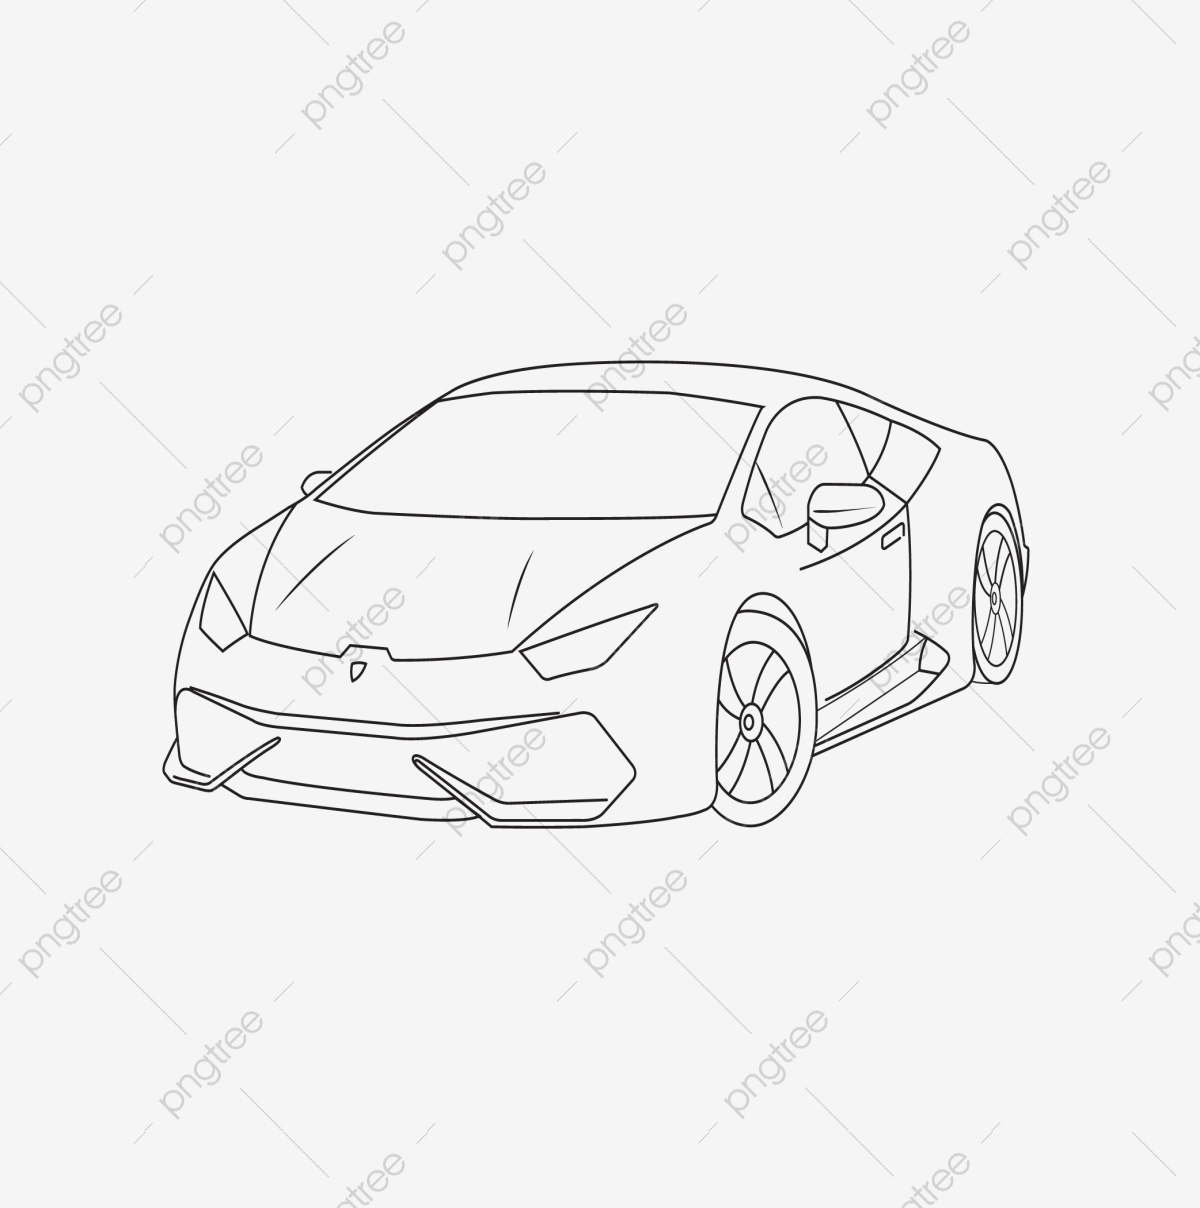 Lamborghini Aventador S Car Line Art Drawing Car Line Art Drawing Png And Vector With Transparent Background For Free Download